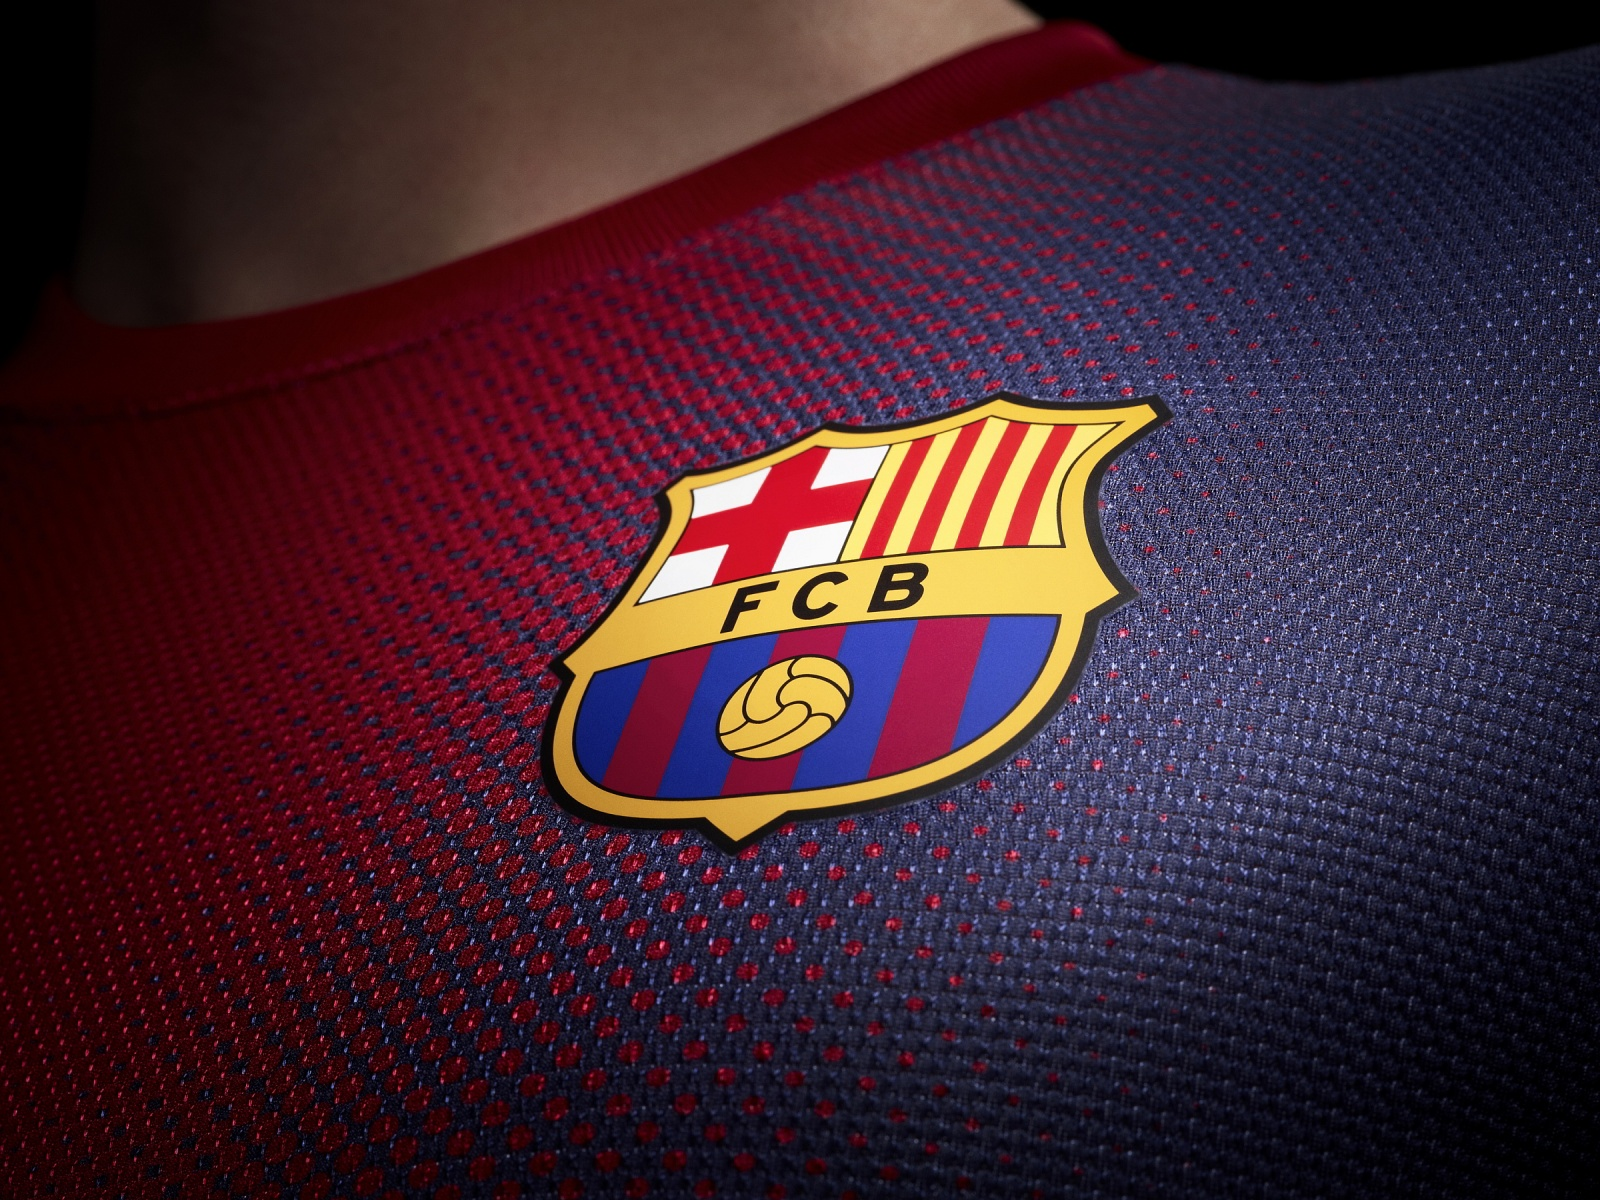 Barcelona new jersey for 2013-2014